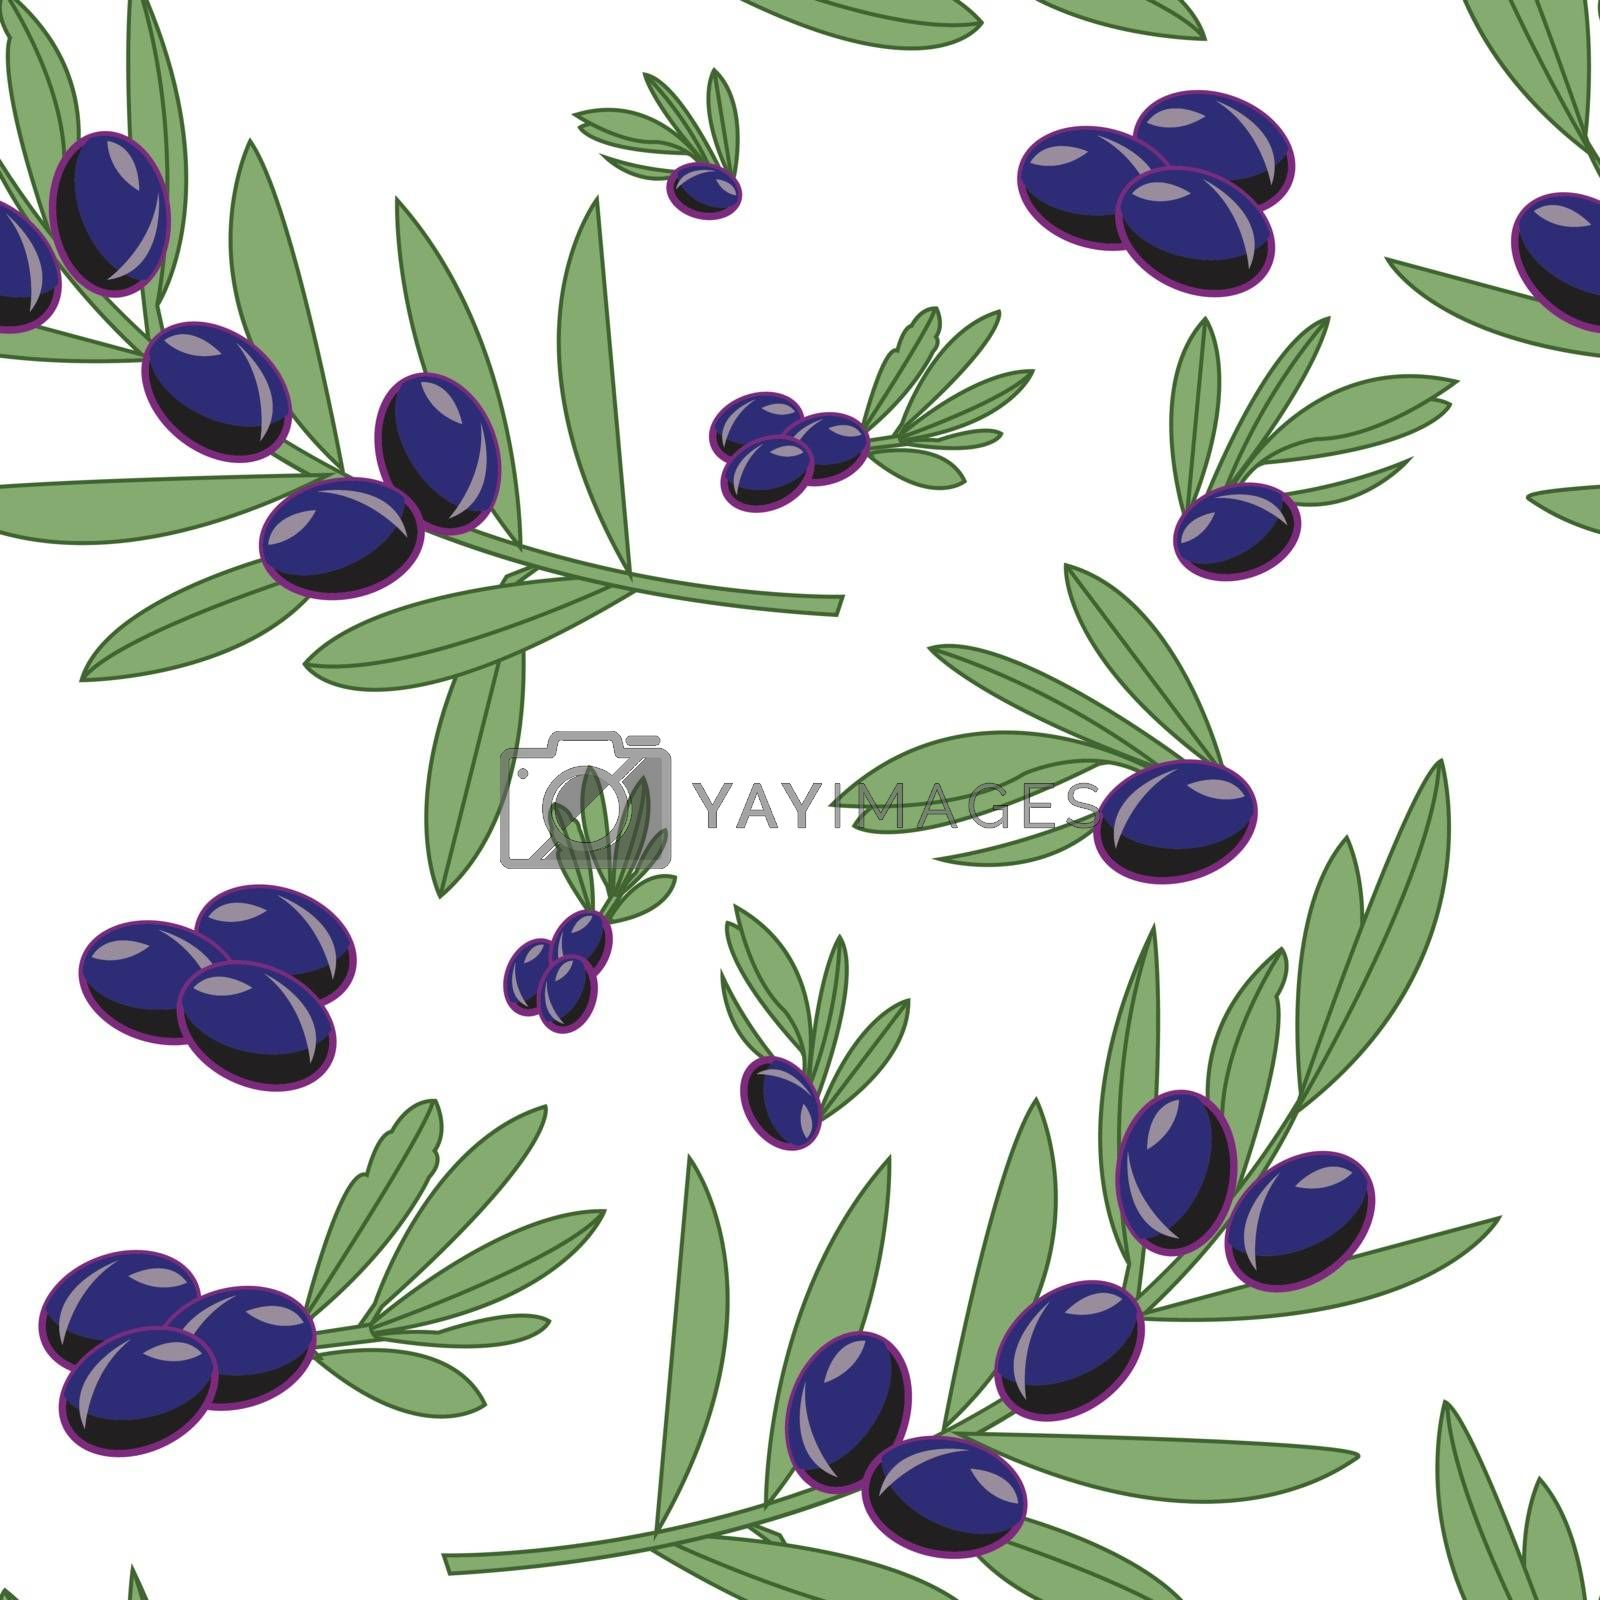 This illustration represents seamless pattern of some branch of olives, with pale background.